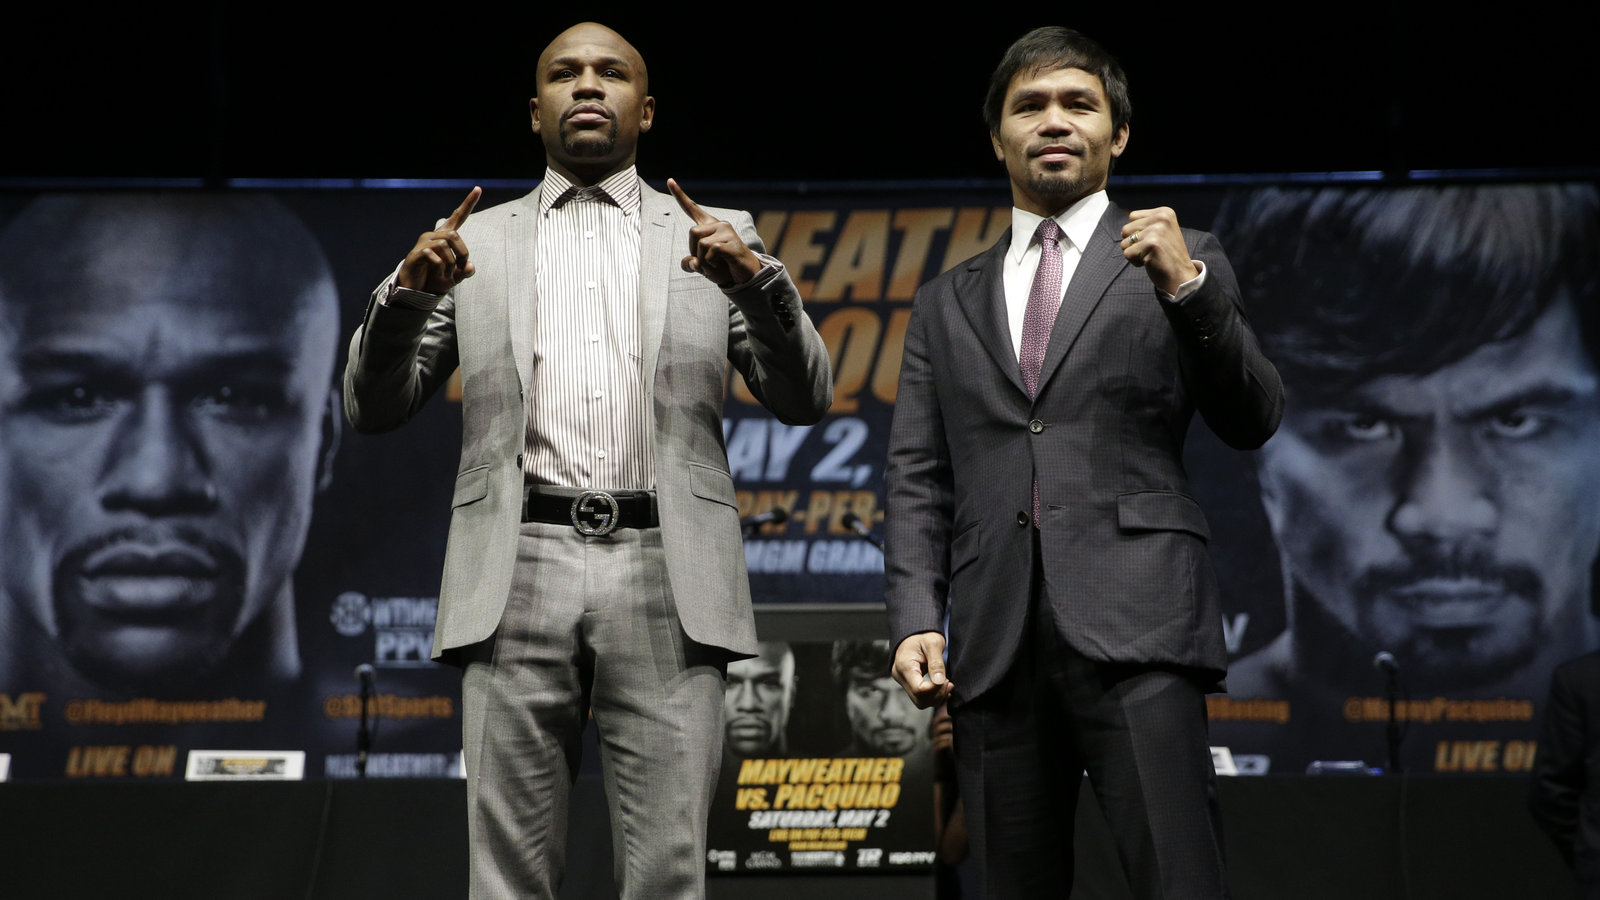 Mayweather, Pacquiao Will Brawl For Boxing's Richest Purse Ever